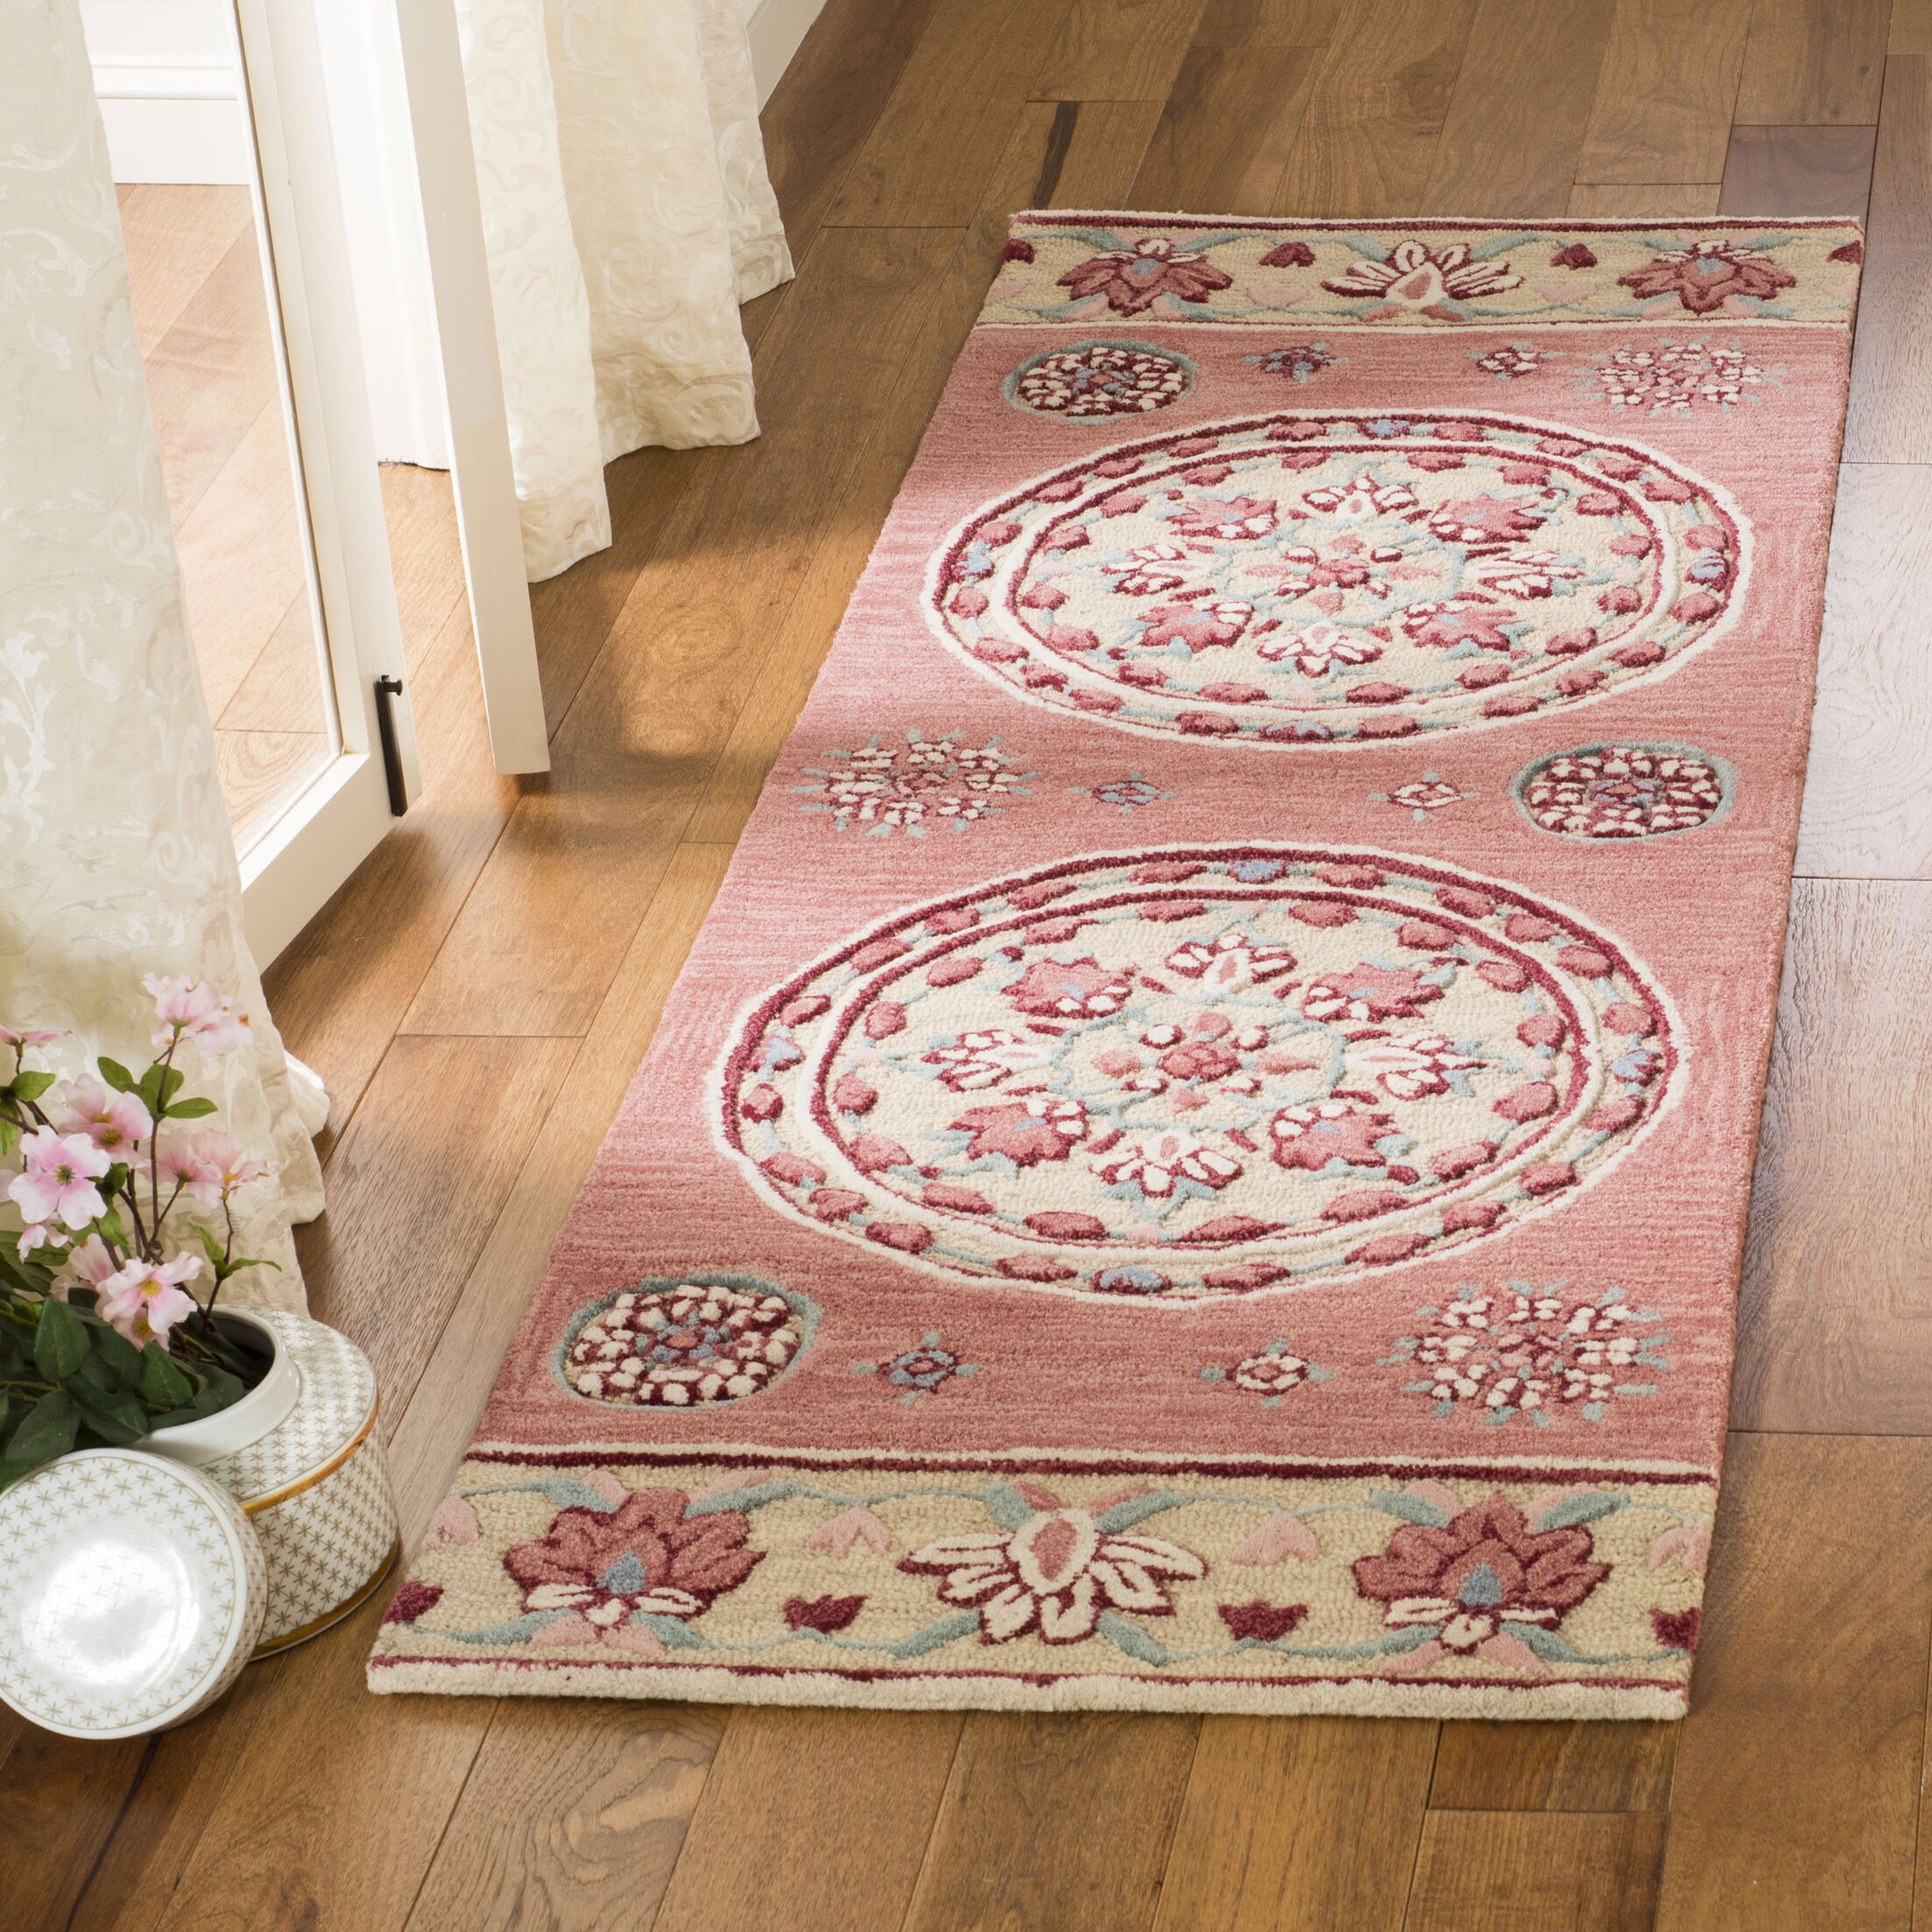 Eatonville Hand Tufted Wool Red Area Rug Rug Size: Runner 2'3